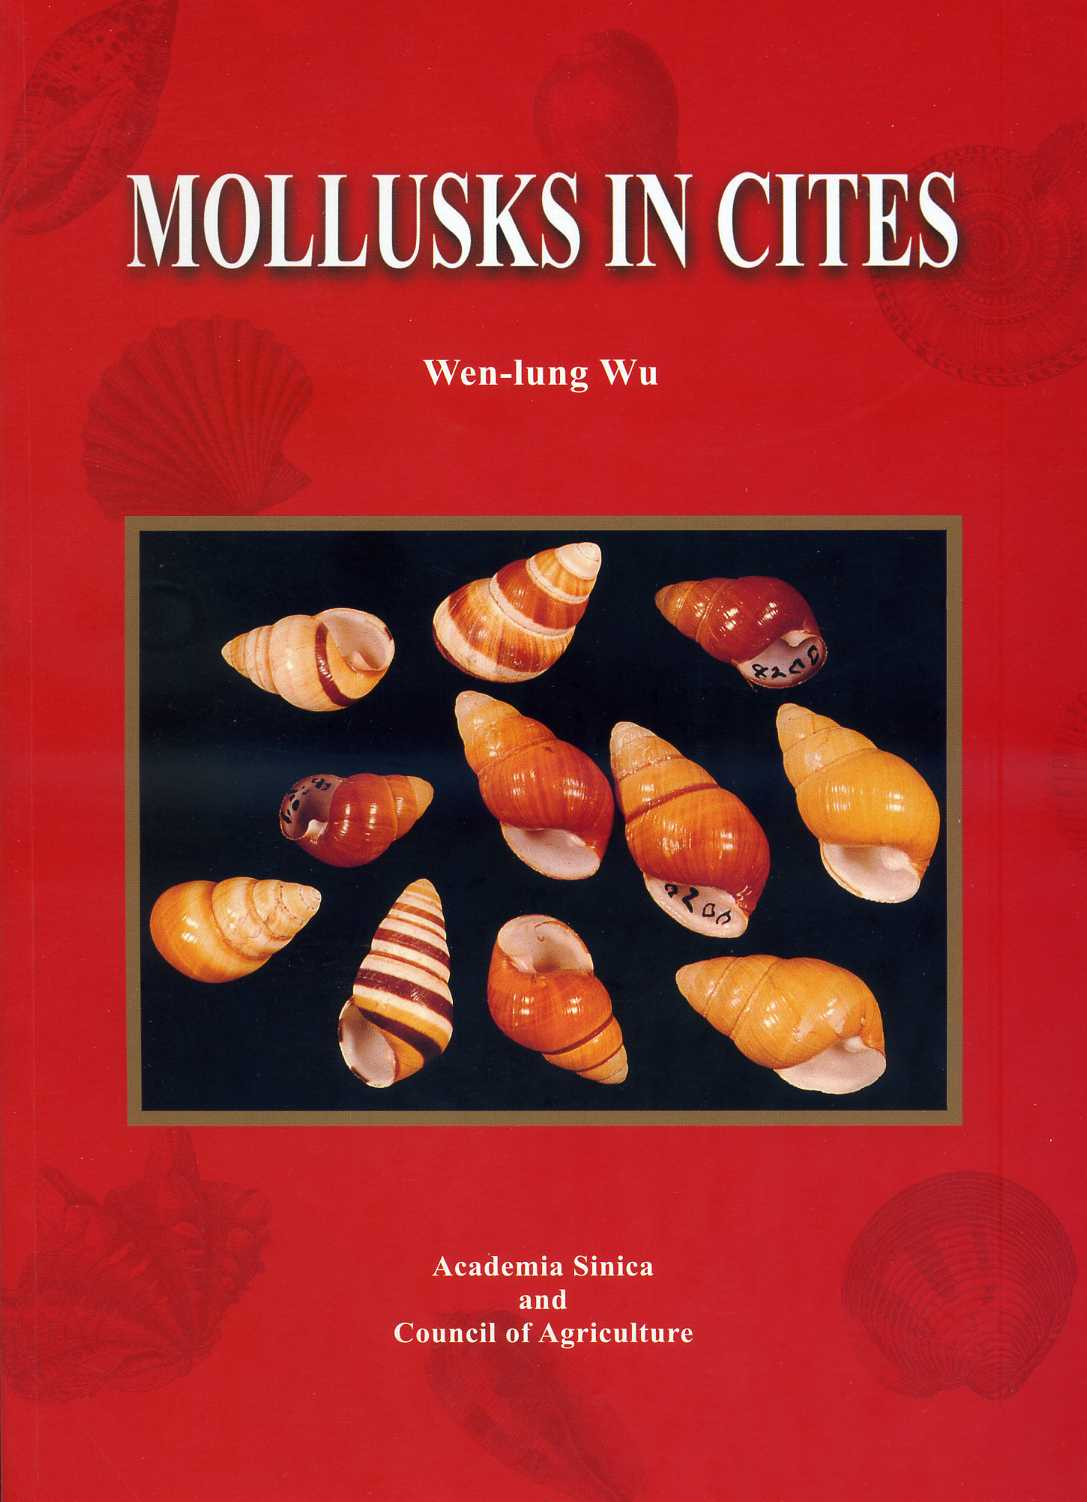 MOLLUSKS IN CITES